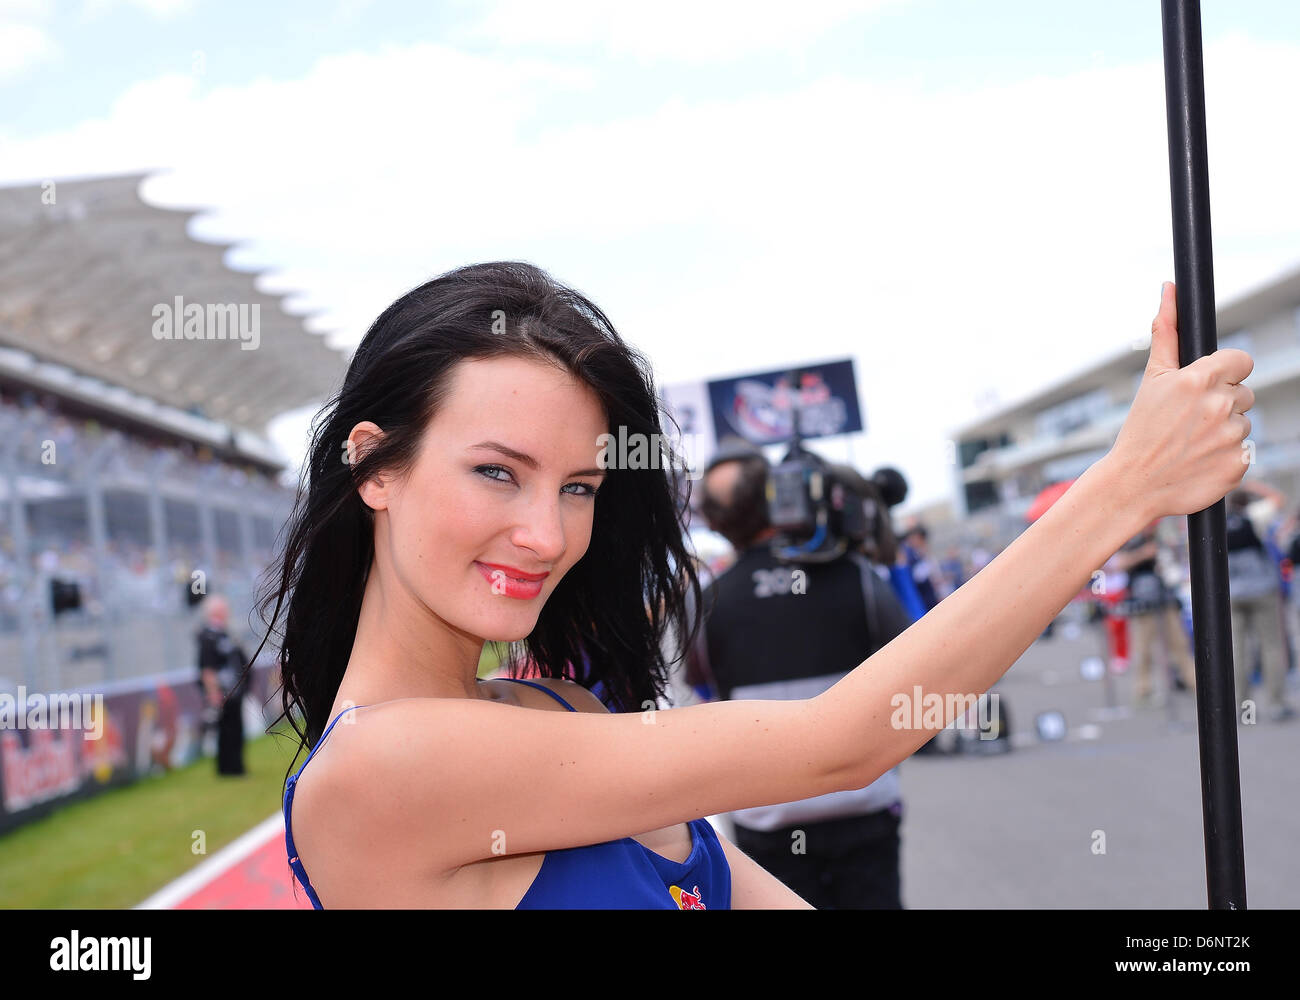 Grid Girls Circuit Americas In Stock Photos & Grid Girls Circuit Americas In Stock Images - Alamy